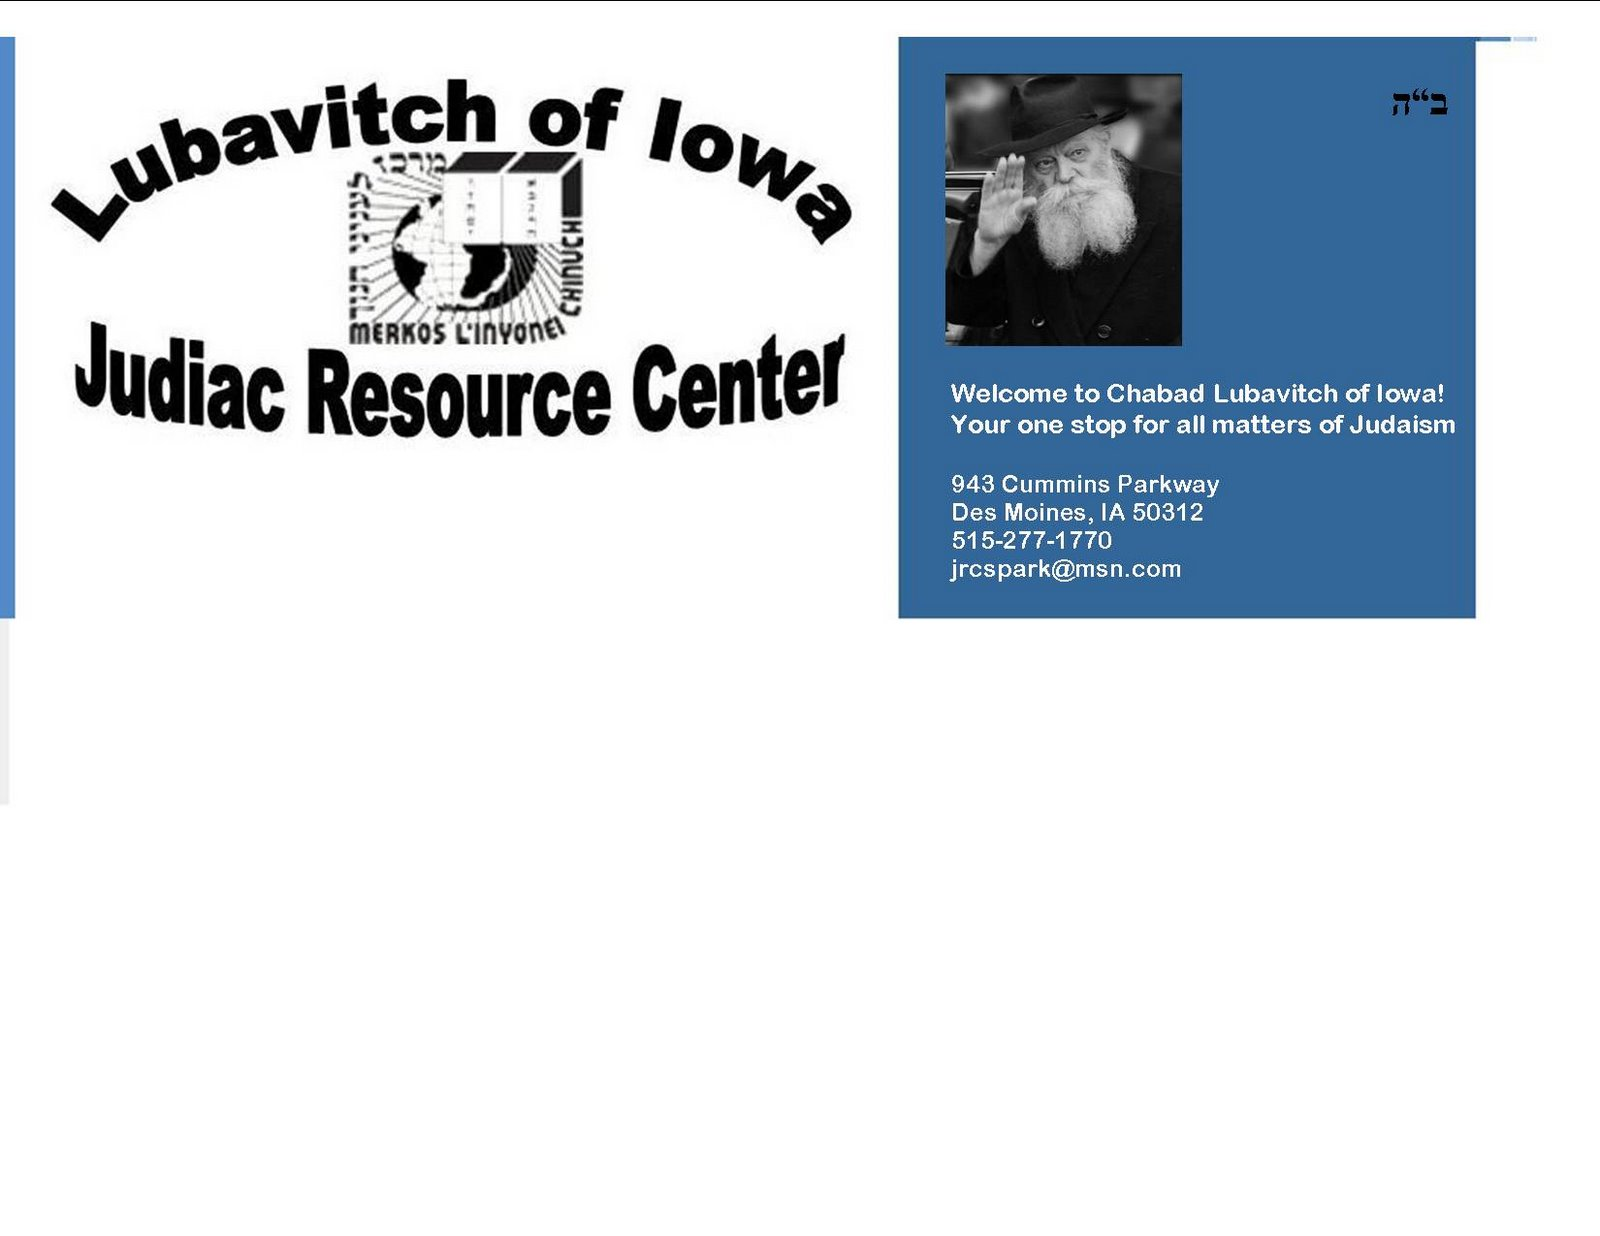 Lubavitch of Iowa